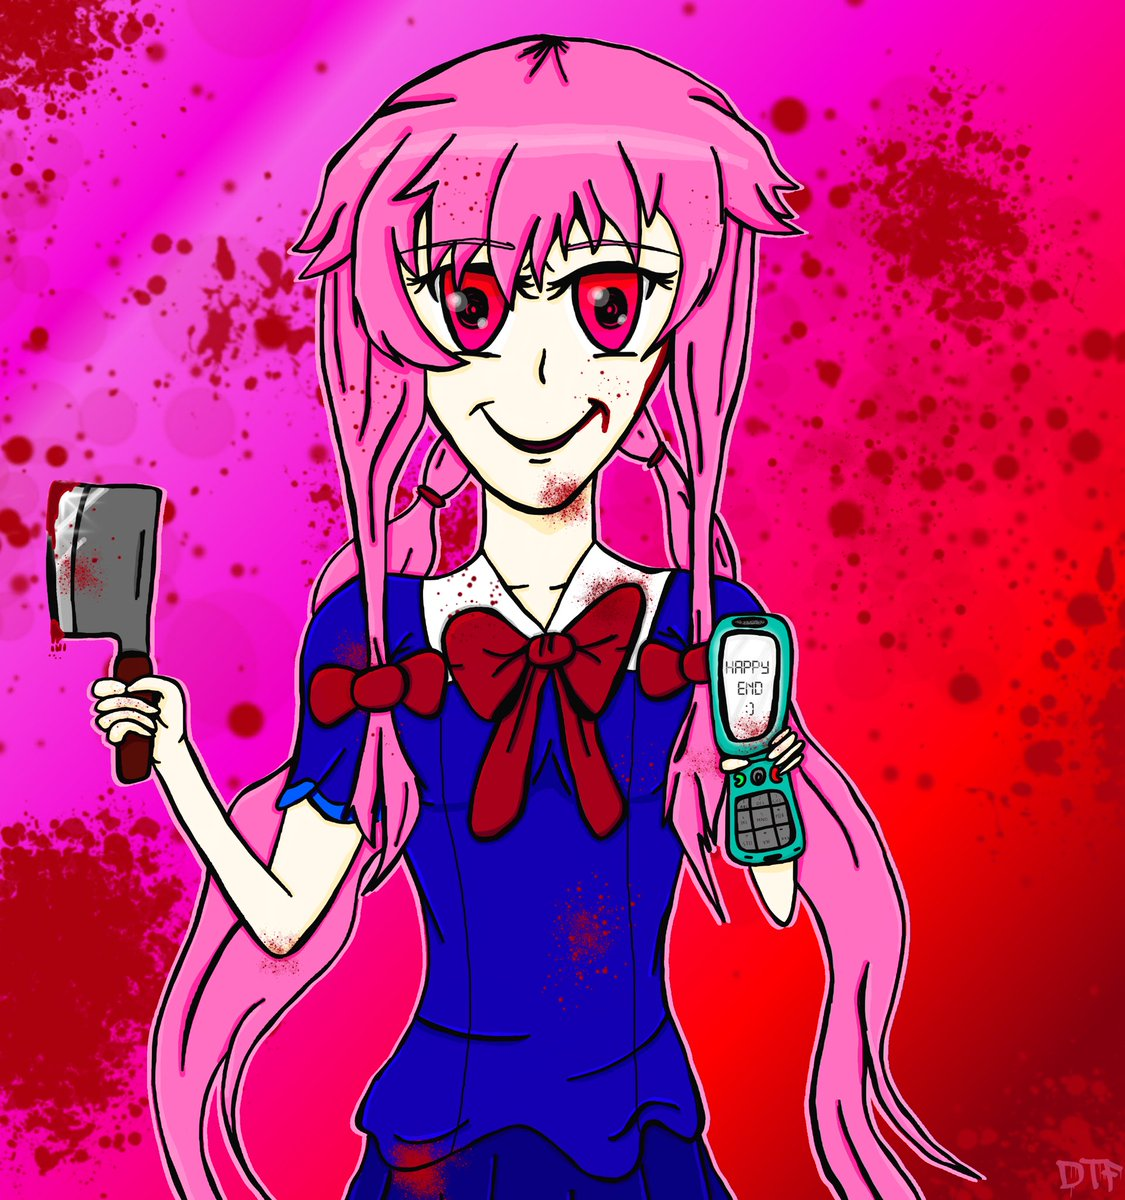 Birthday art for @etehwierdokid. Yuno Gasai from his favorite anime, Future Diary. Very fire show, i highly recommend.  #fanart #anime #krita #gaomon #digitalart #yunogasai #futurediary #manga #pink #blood #happyend #cellphone #knife #character #render